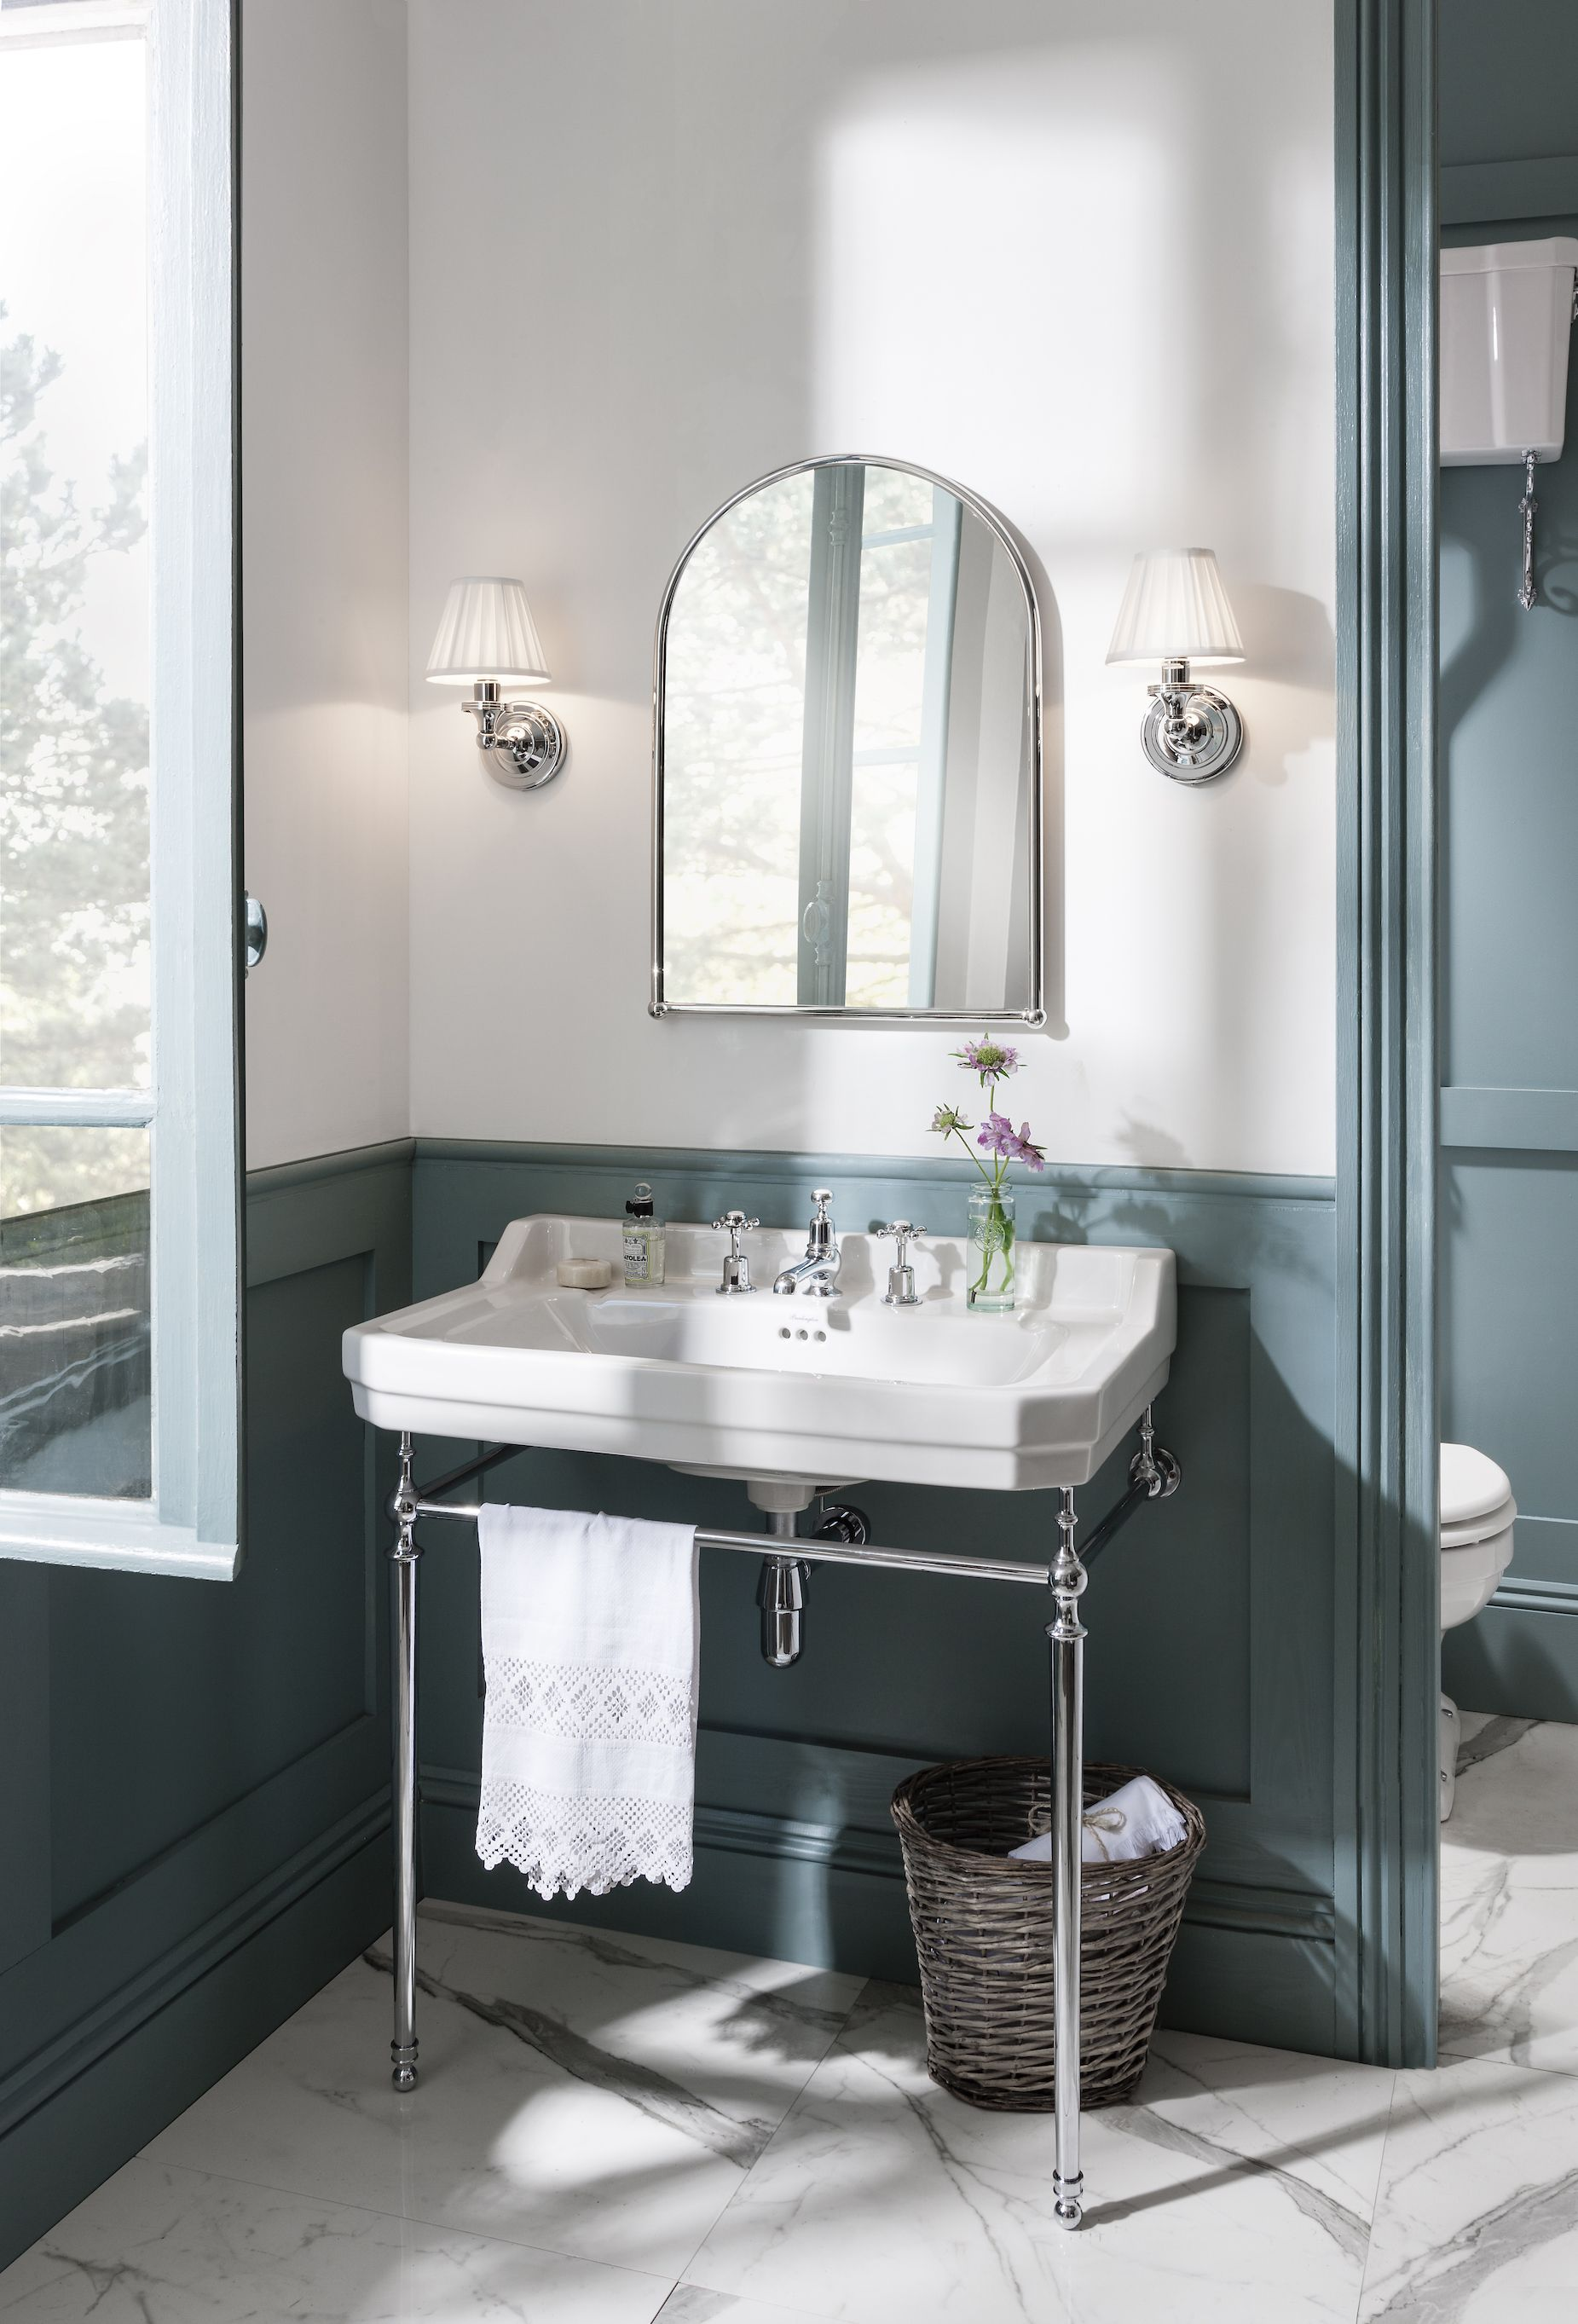 Blue Trend Period Bathroom With A Luxury Freestanding Bath From